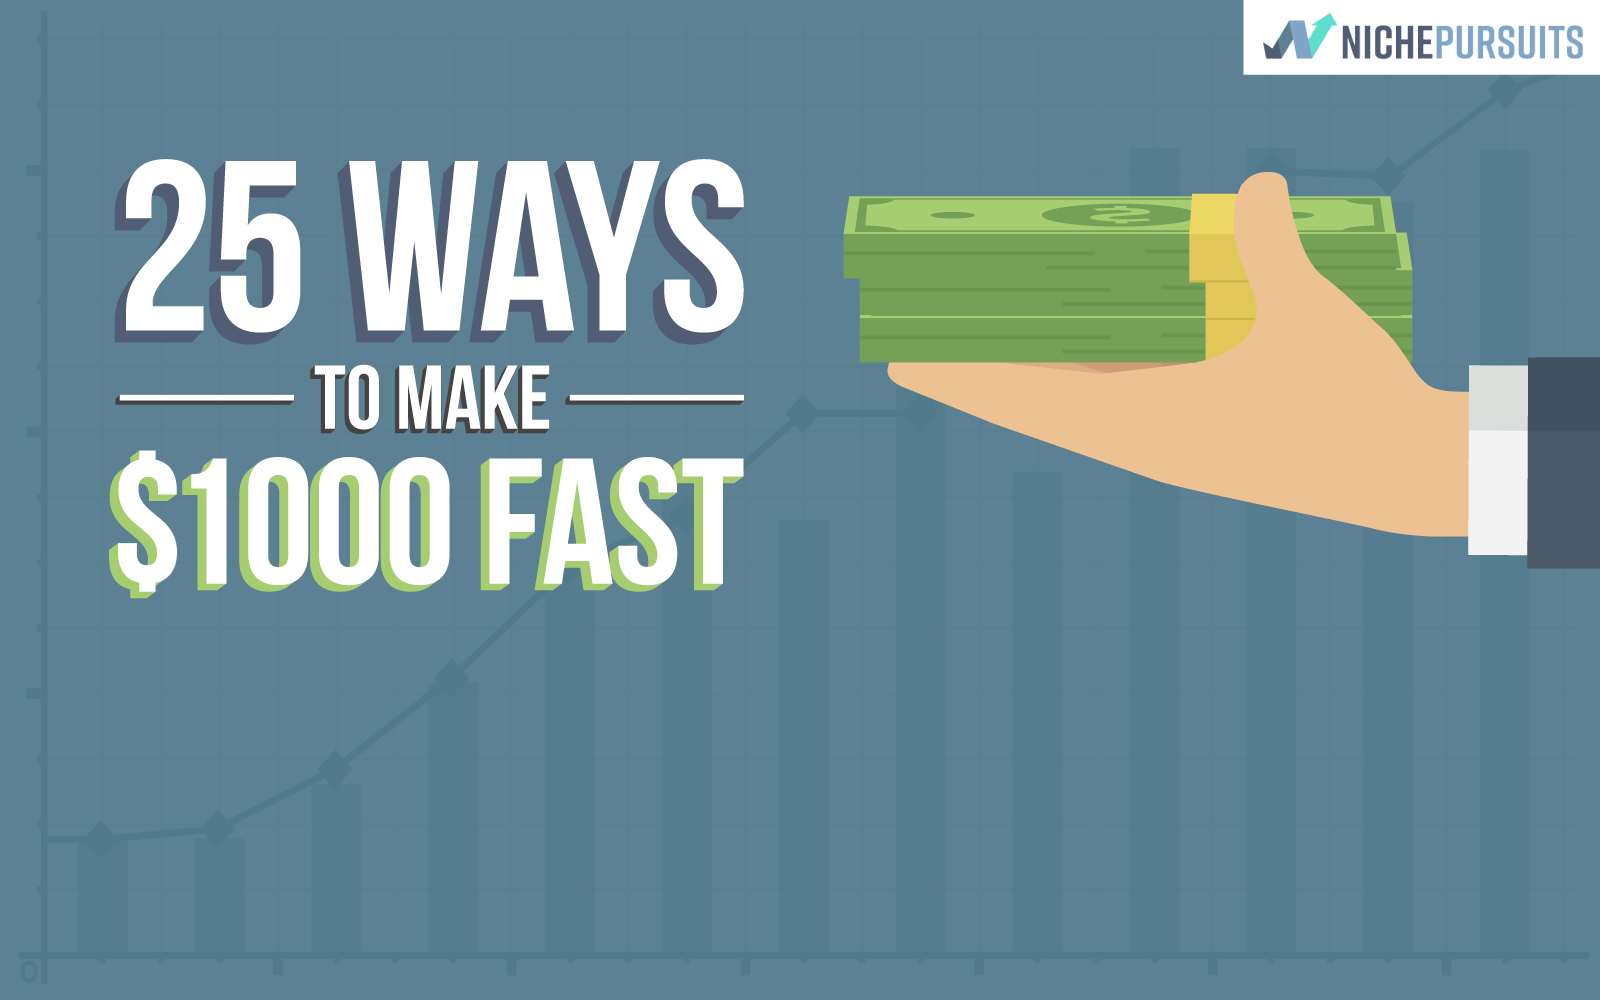 Top 34 Ideas on How to Make 1000 Dollars Fast Legally